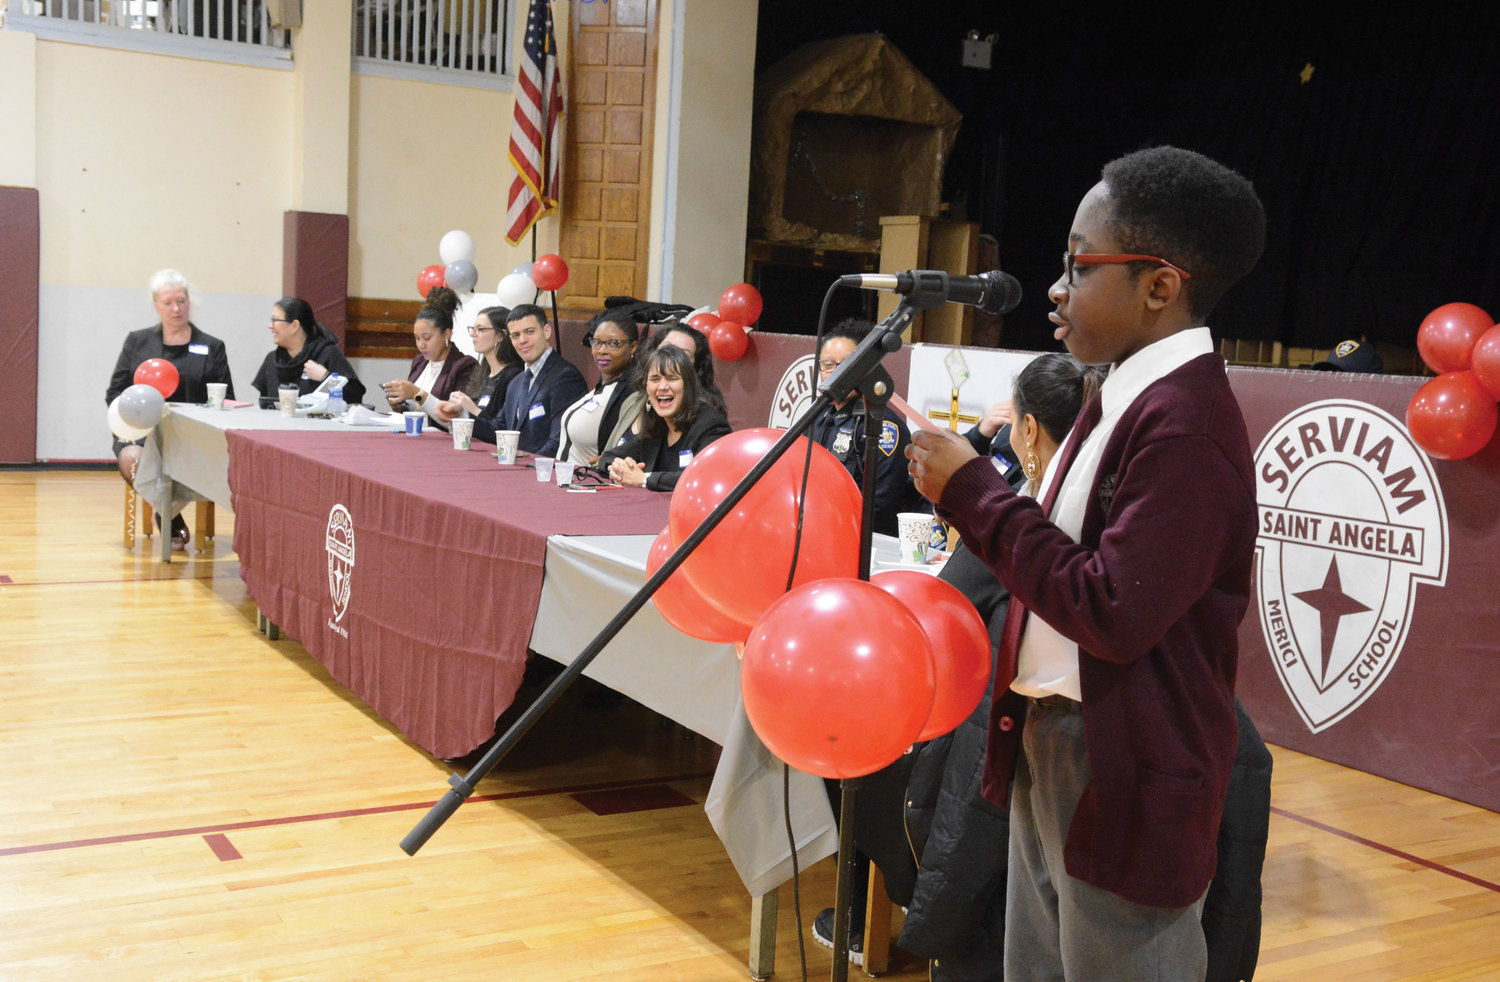 Eighth-grader Michael Adulley served as the student moderator.